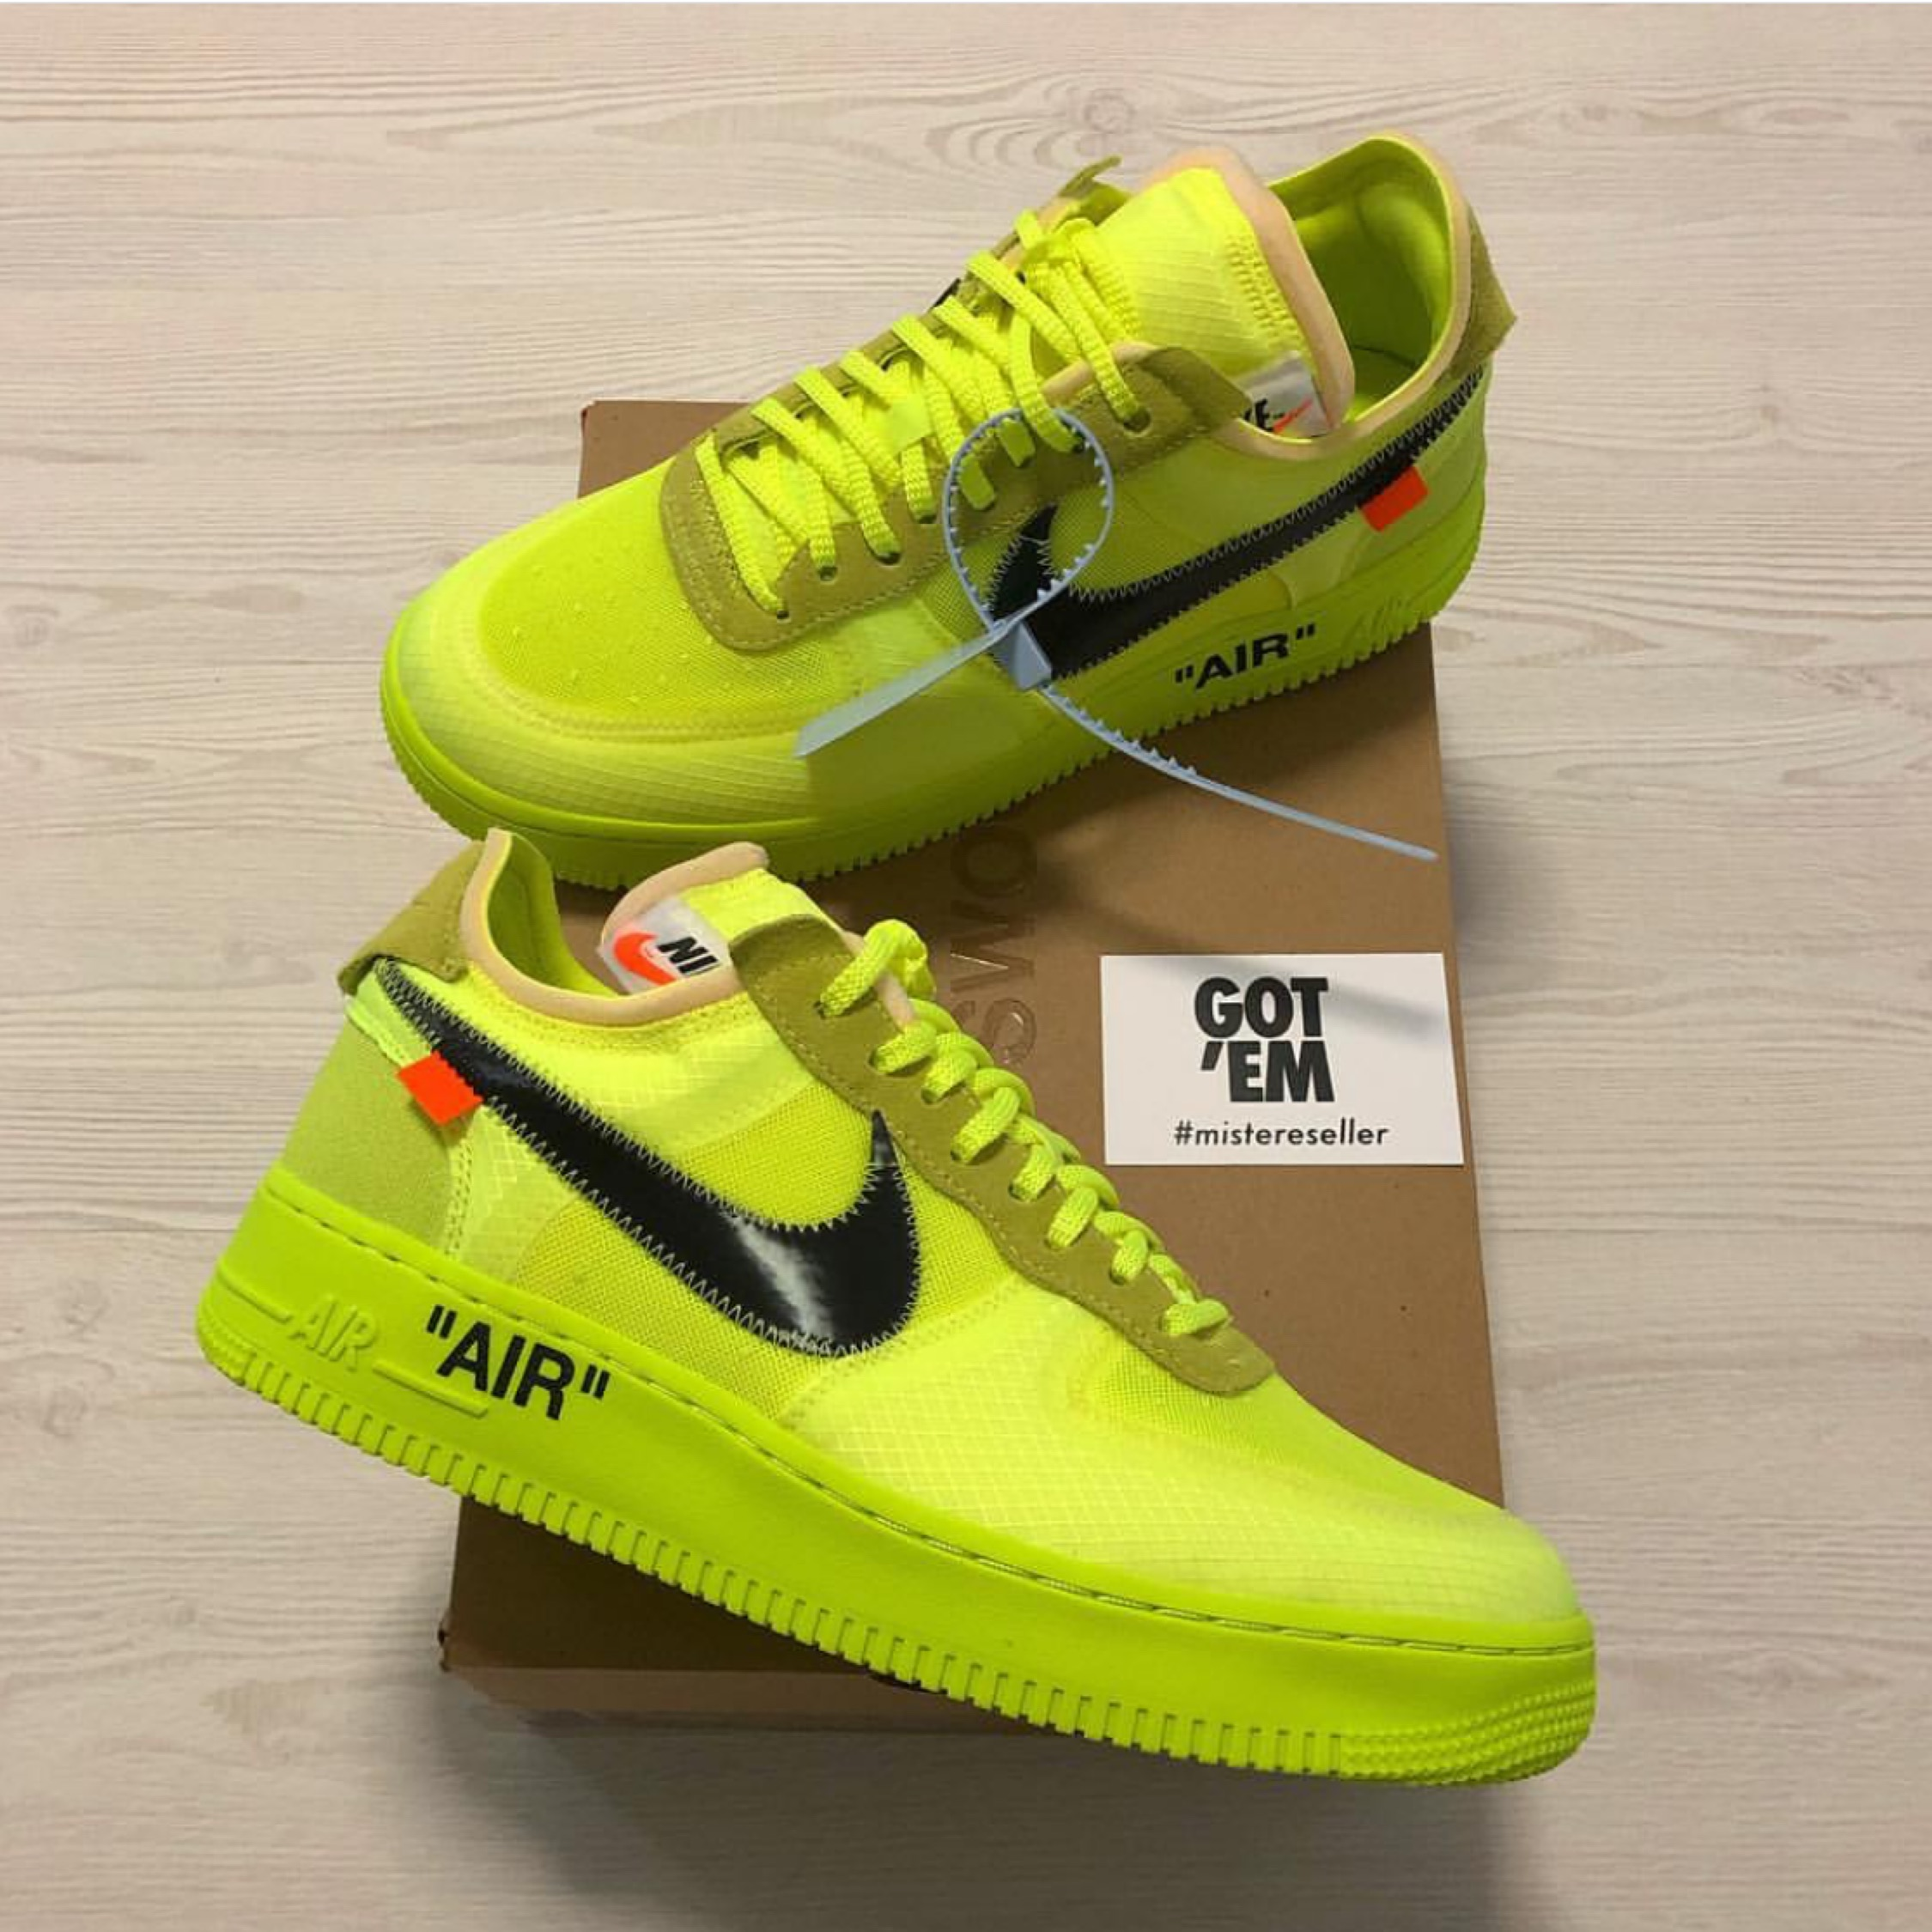 nike x off white air force 1 volt